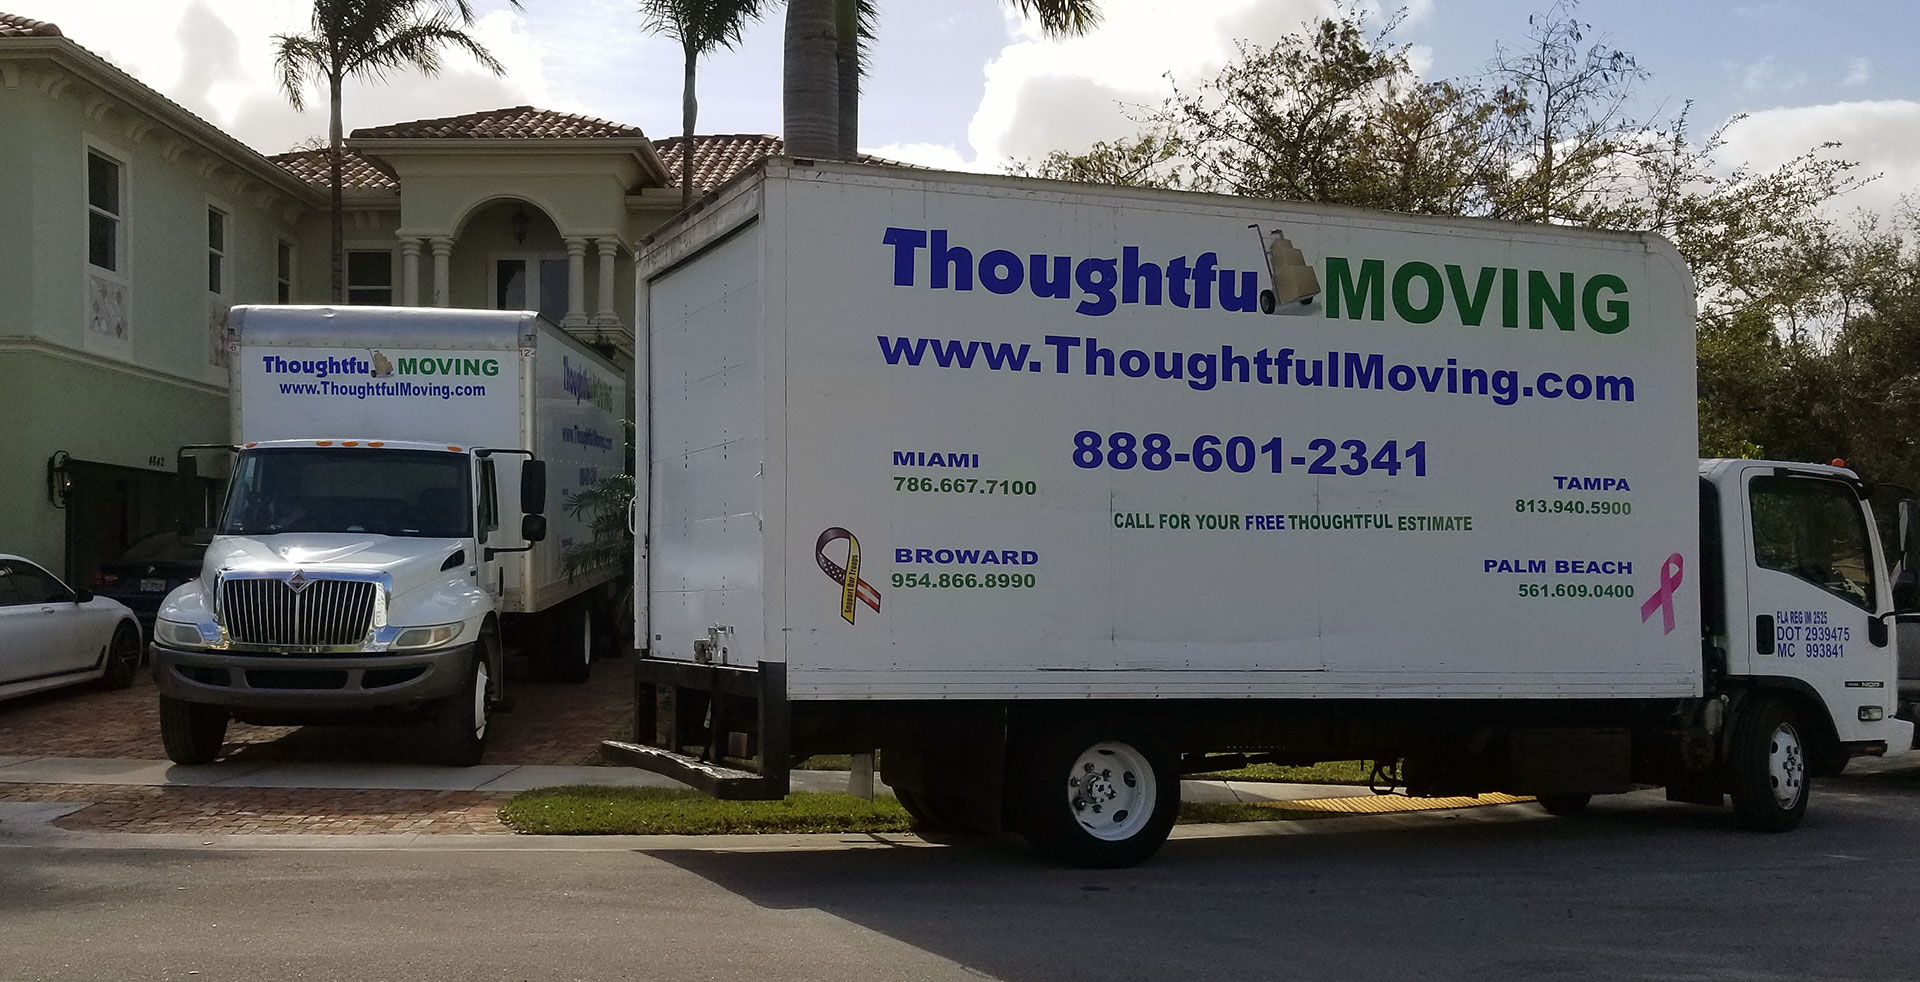 Thoughtful Moving Services